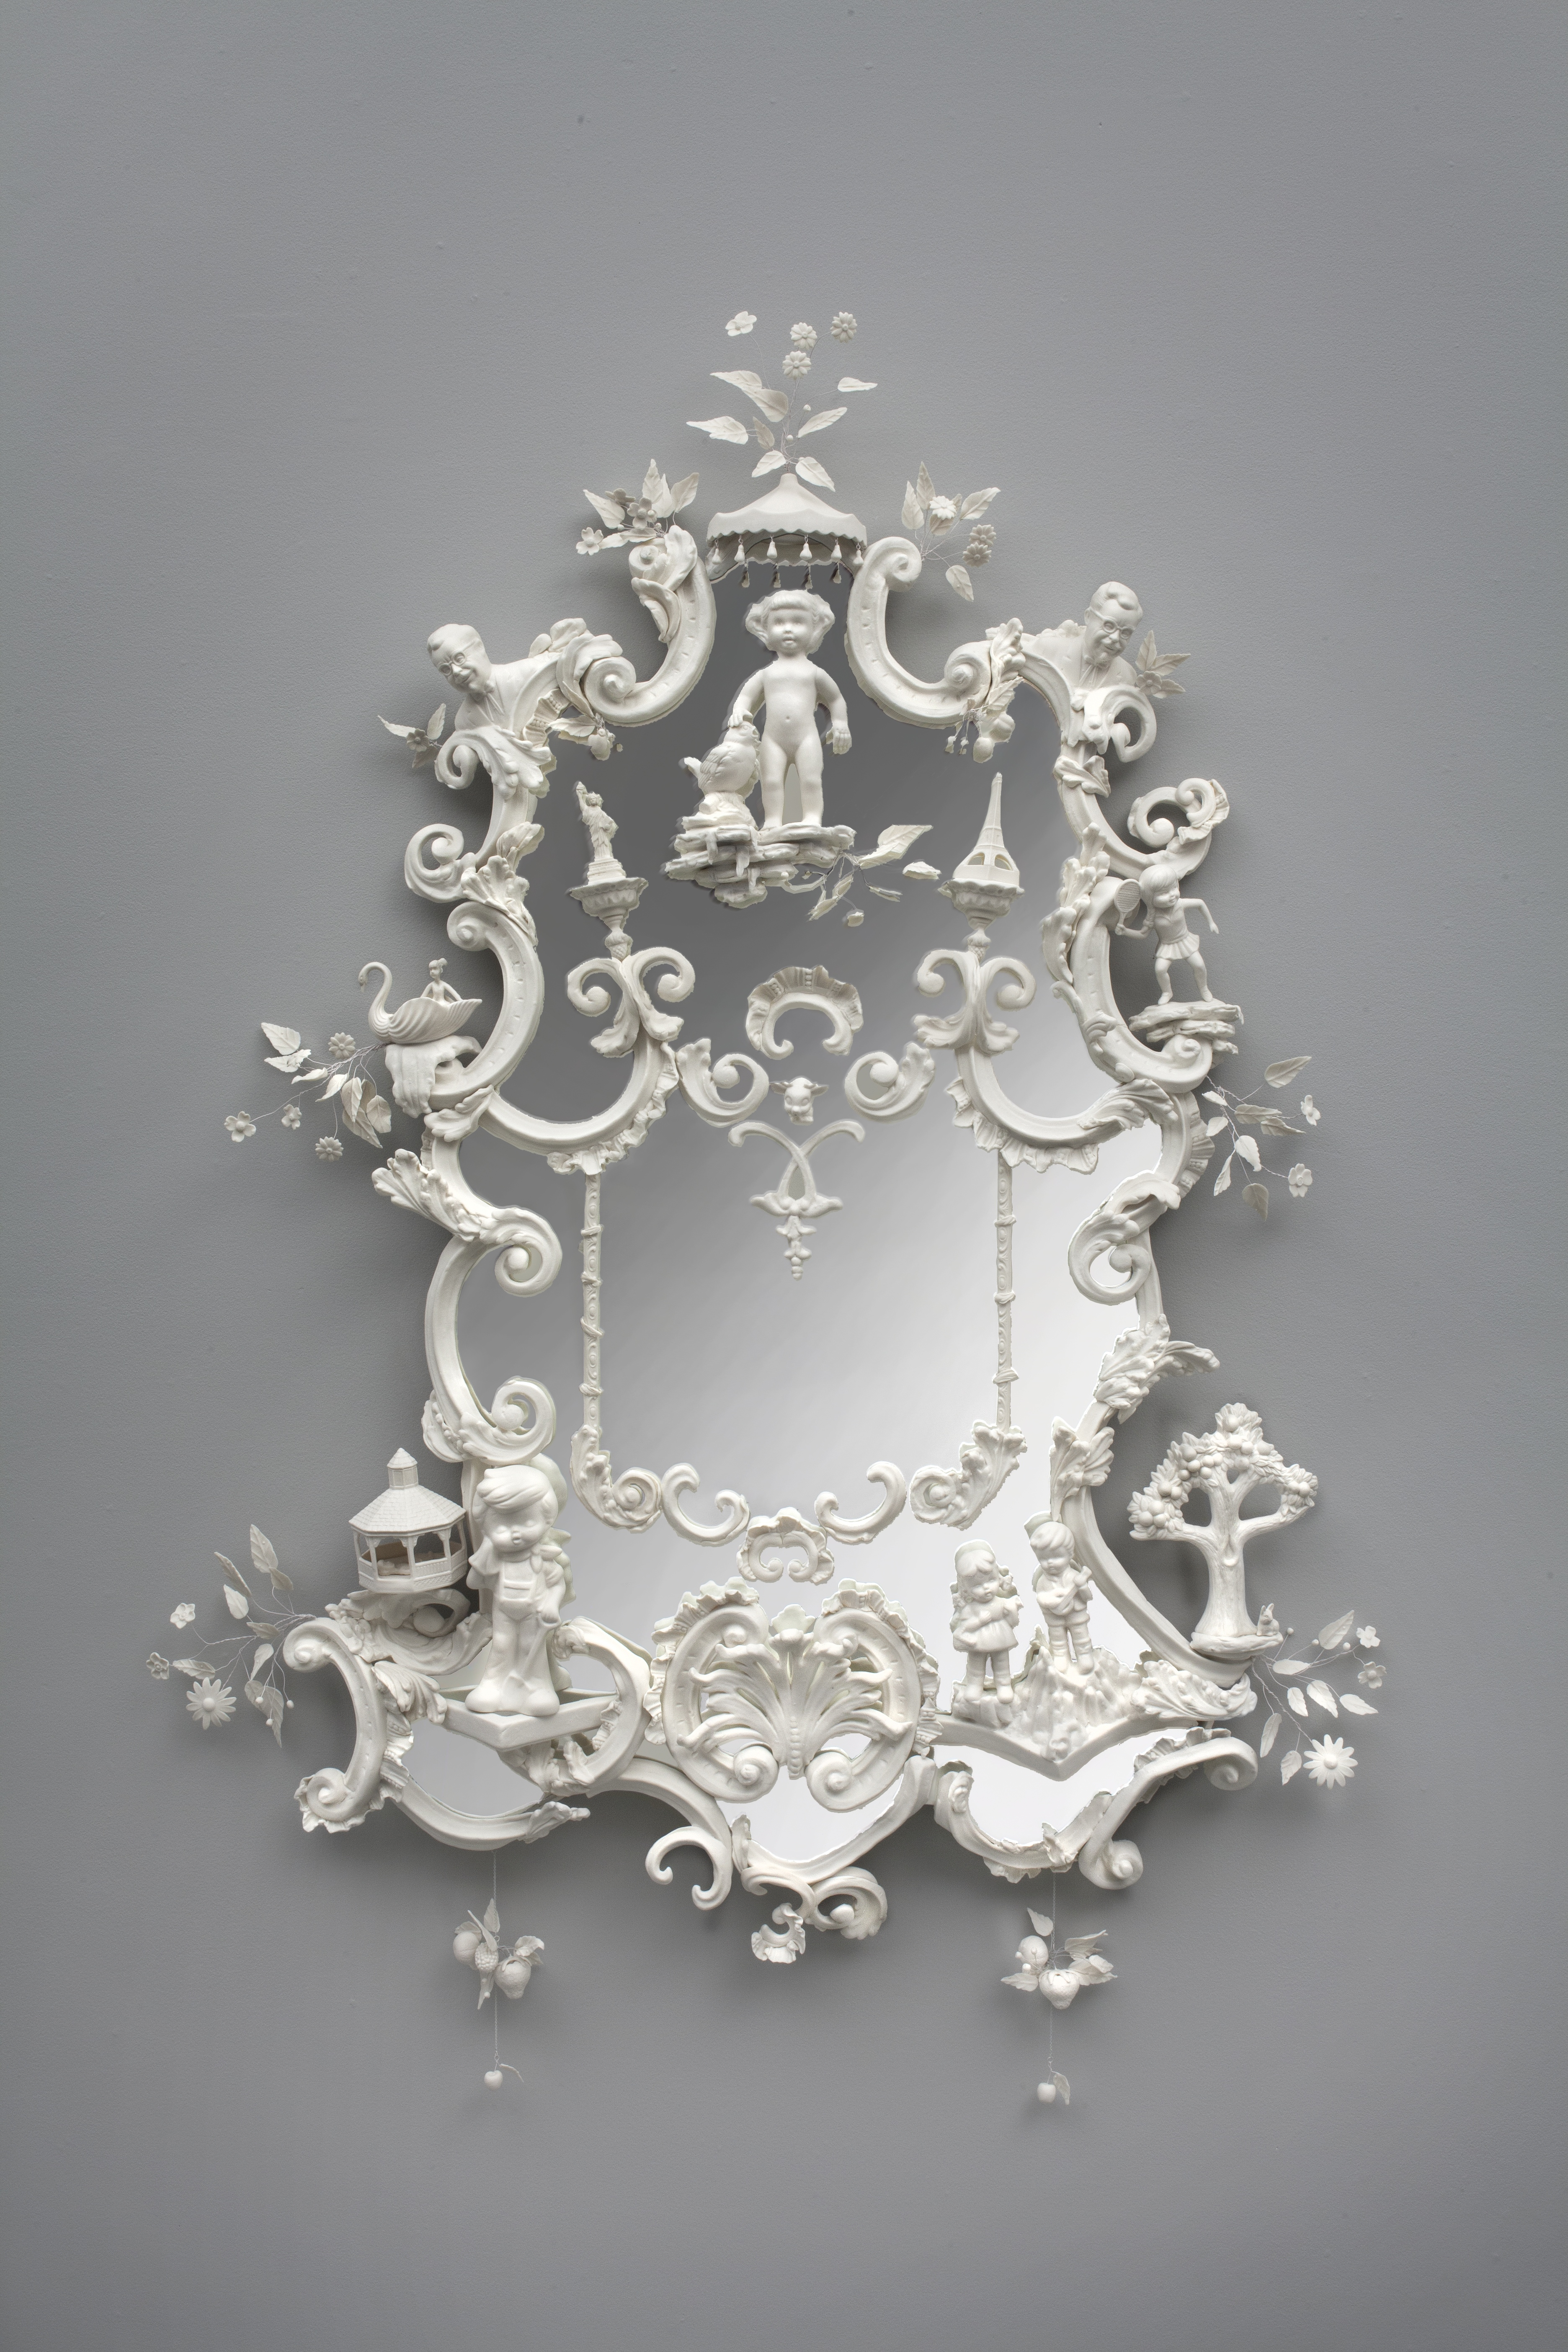 Beth Katleman, Hotel Mirana, USA, 2014. Porcelain and Mirror, 48'' x 30'' x 5''